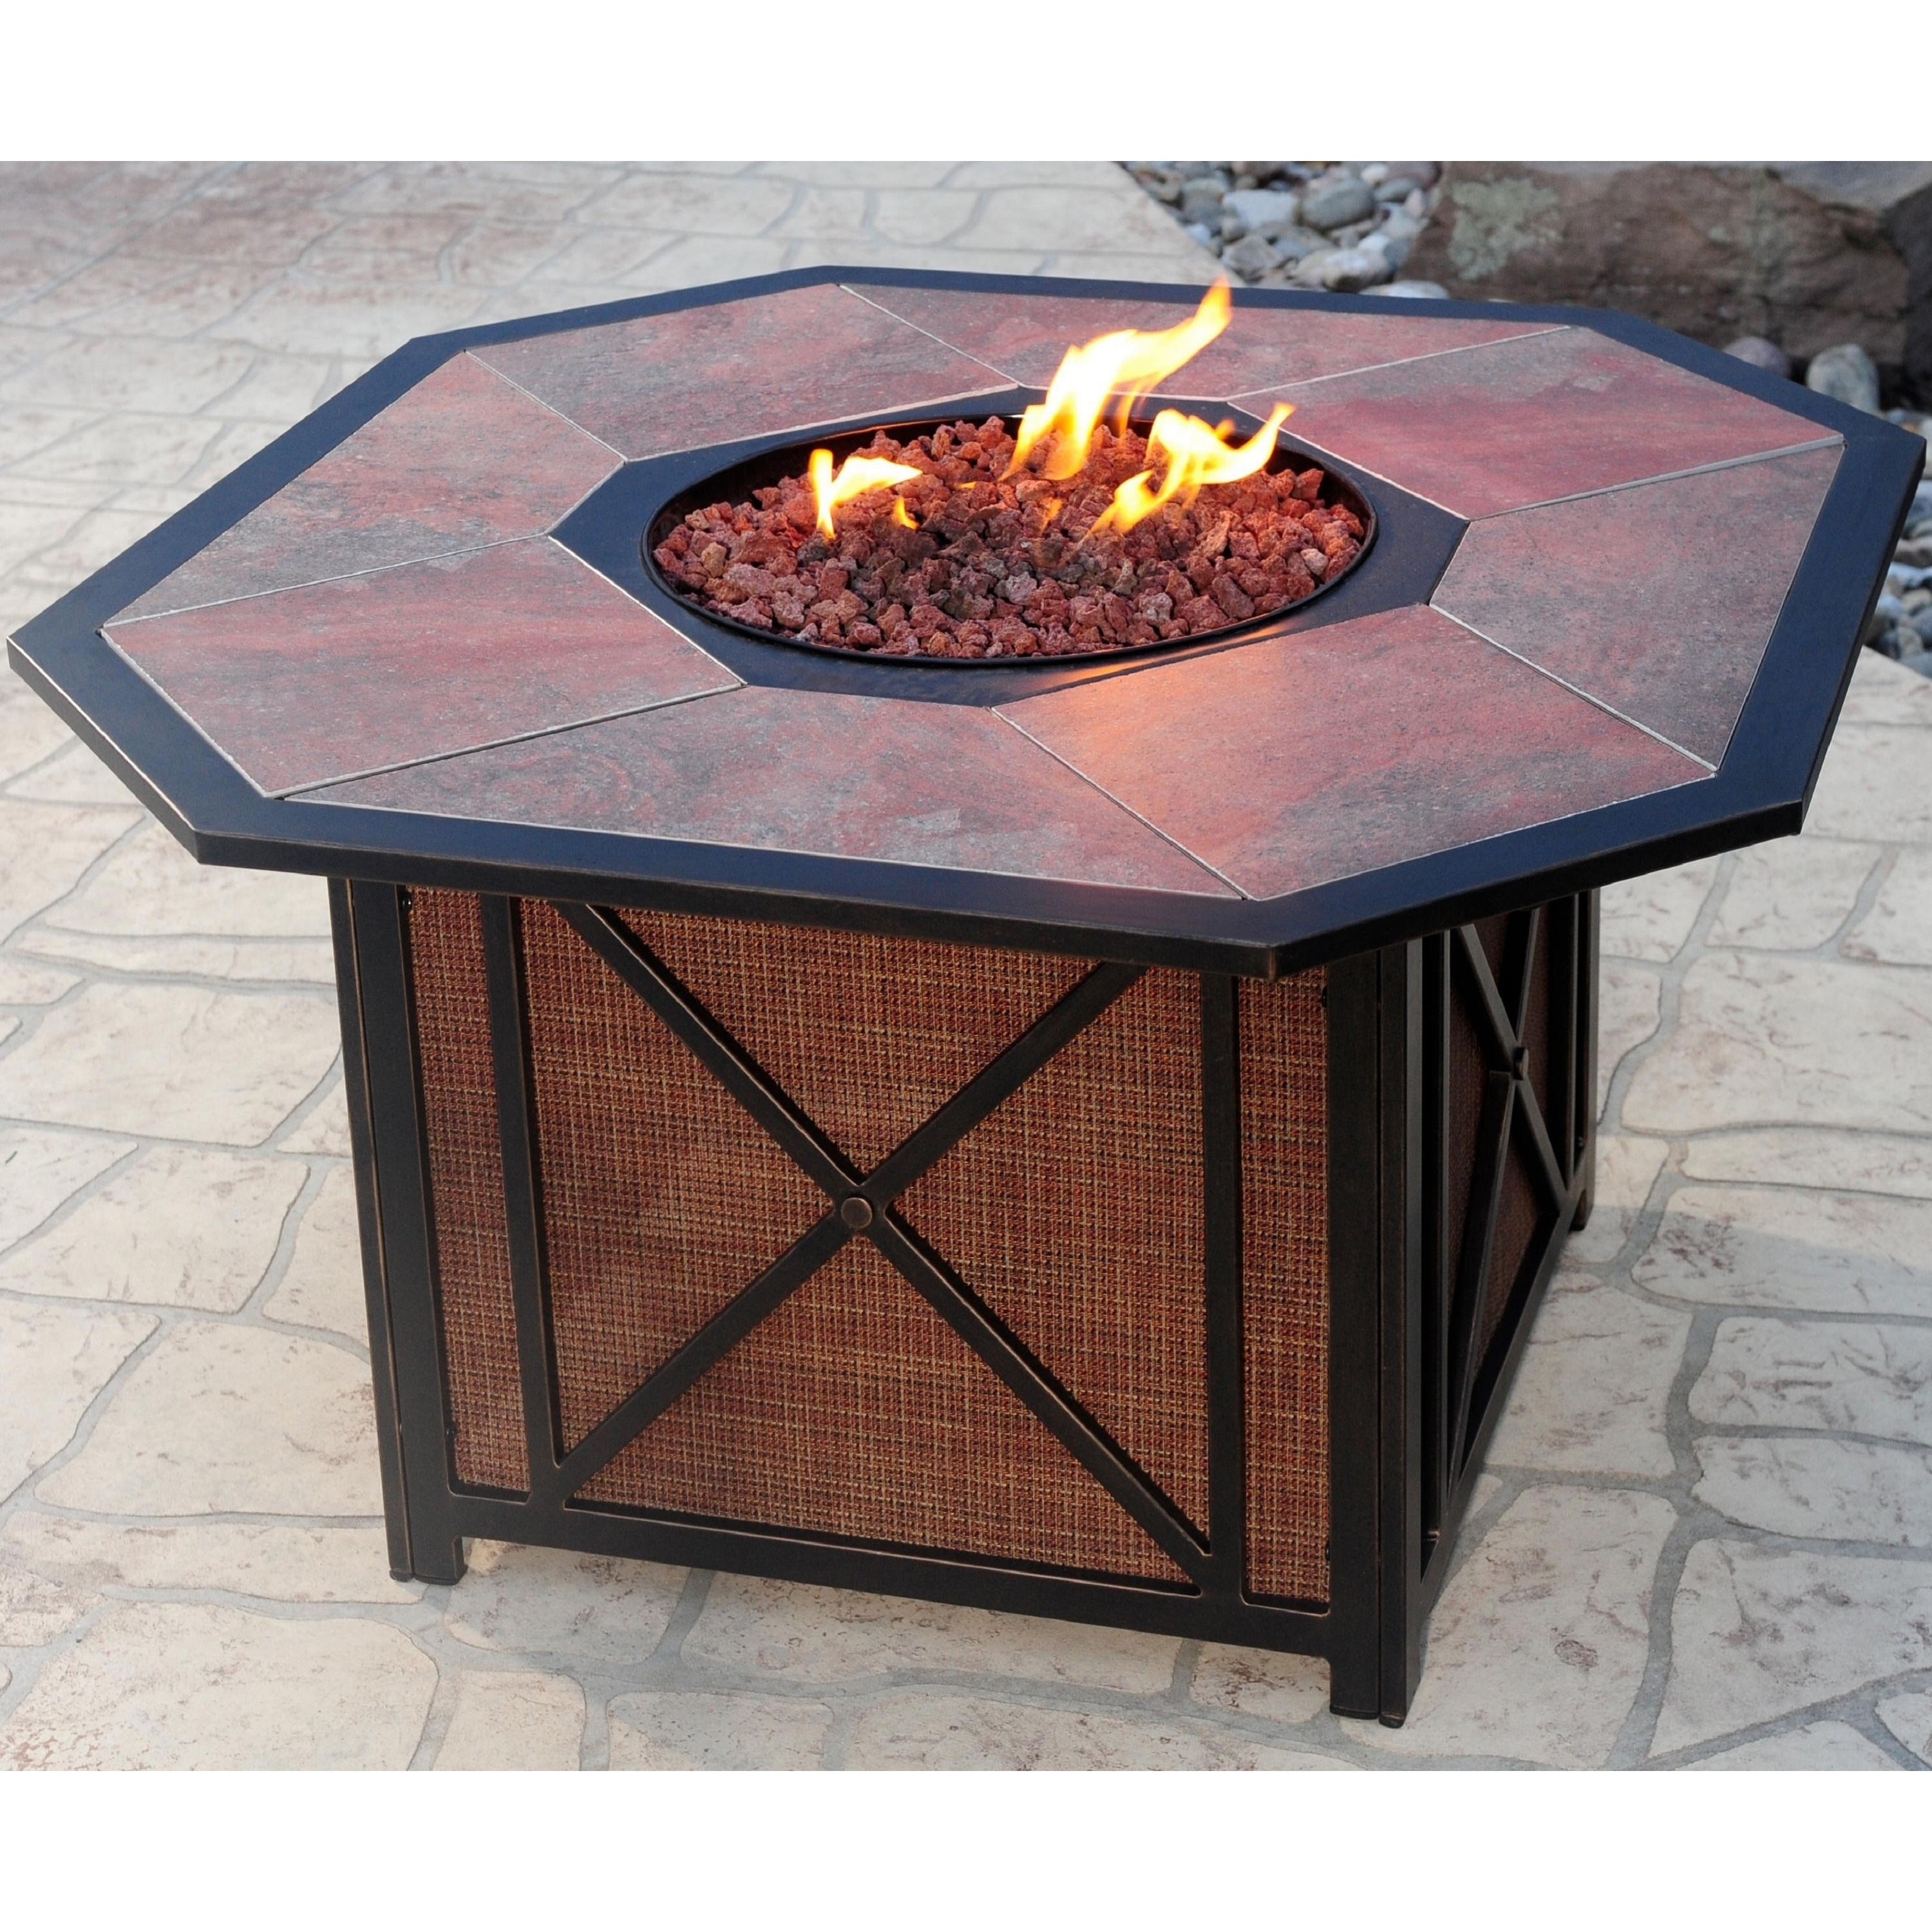 Clarkston Octagonal Gas Fire Pit Table